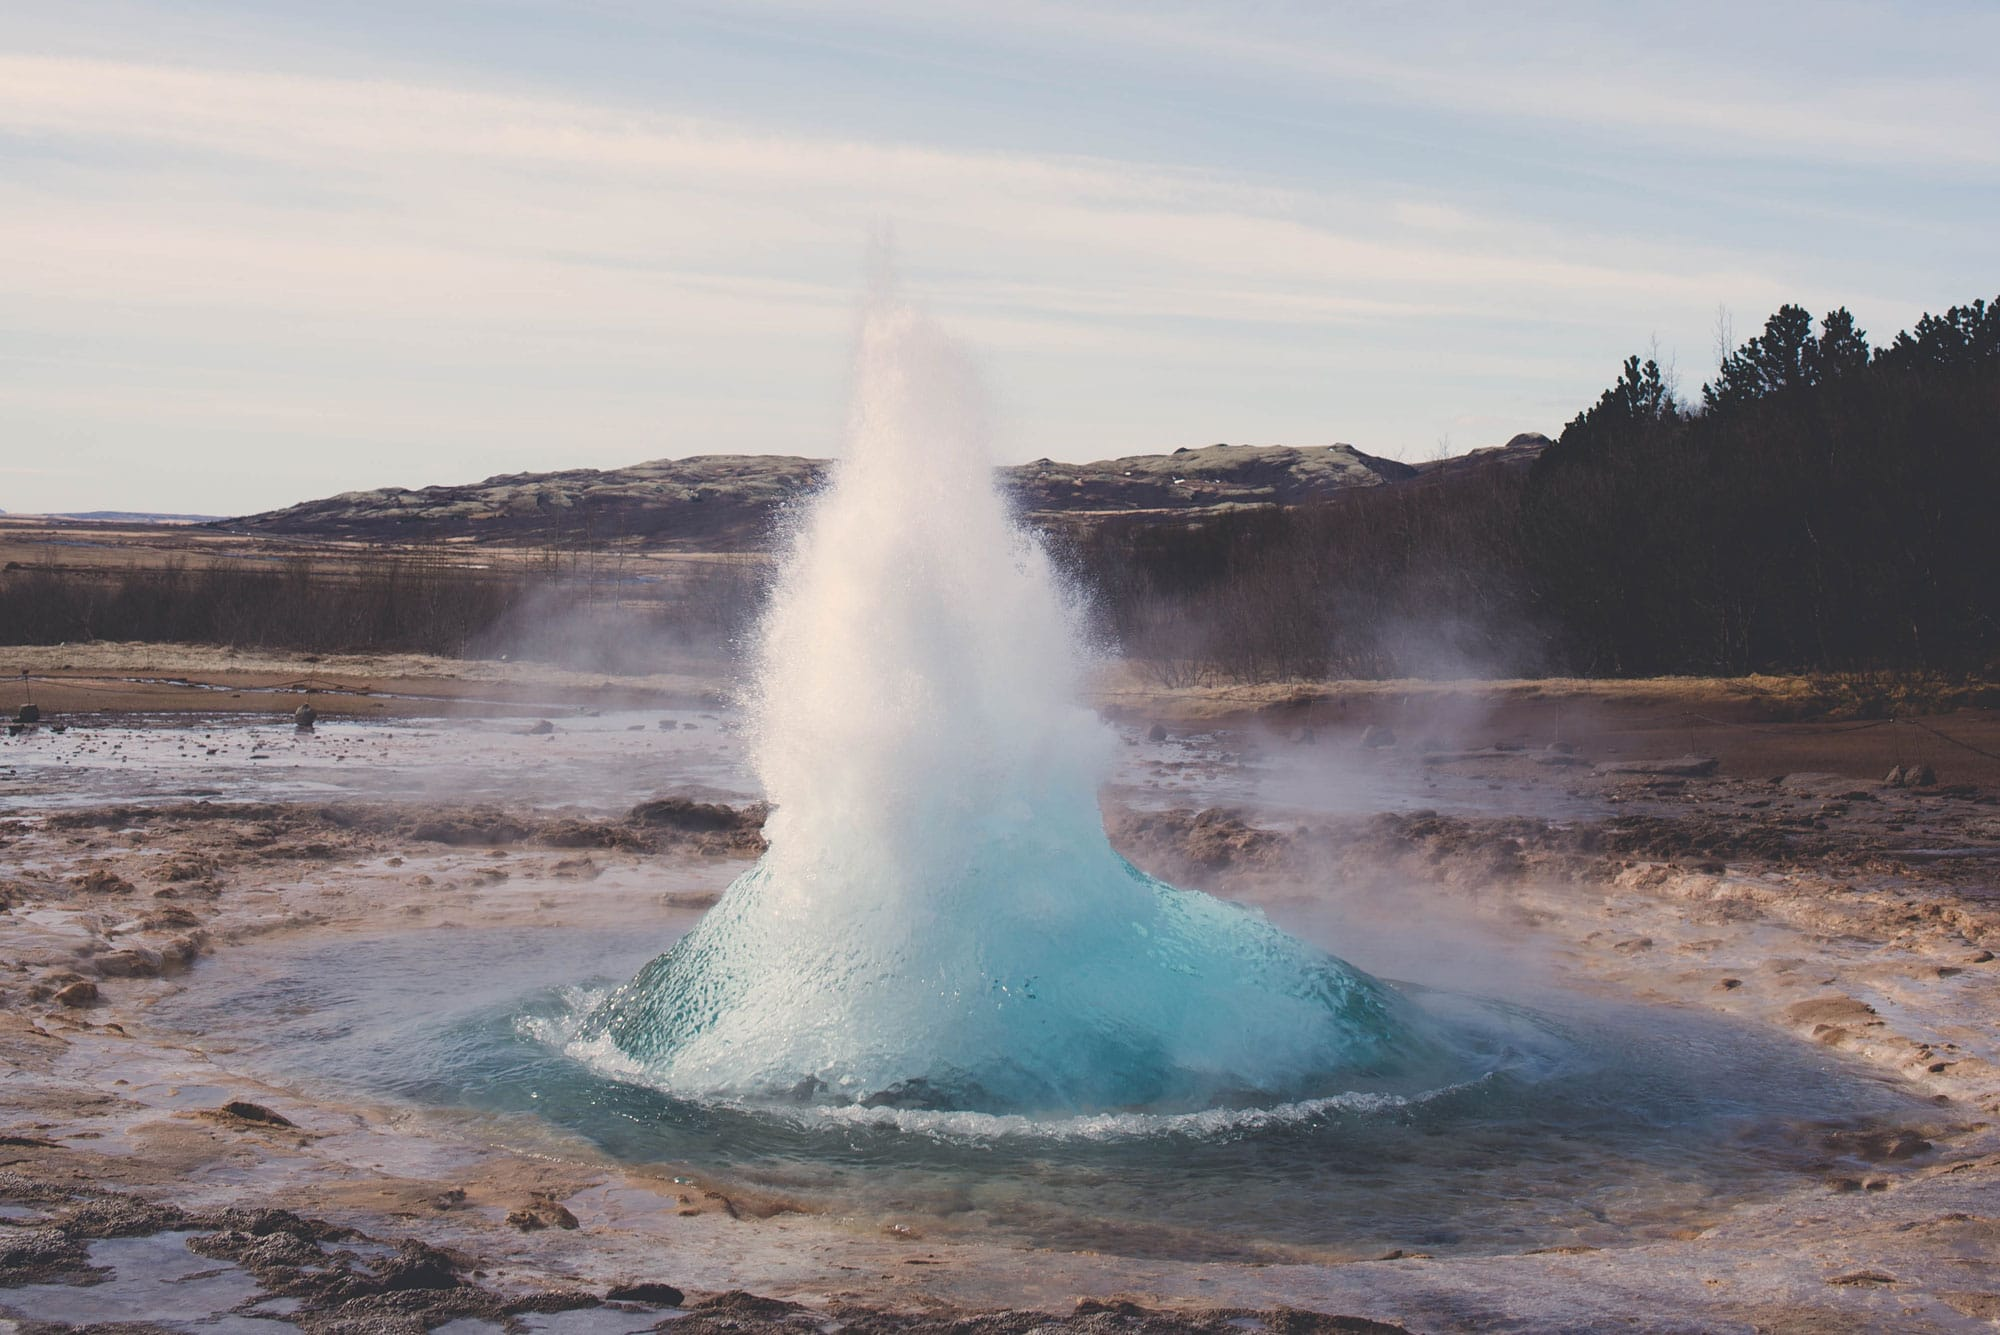 If You Pay Attention To Travel Trends, You Know Iceland Is White-hot. On My Trip, I Visited Iceland's Strokkur Geyser-- An Absolute Must-do!